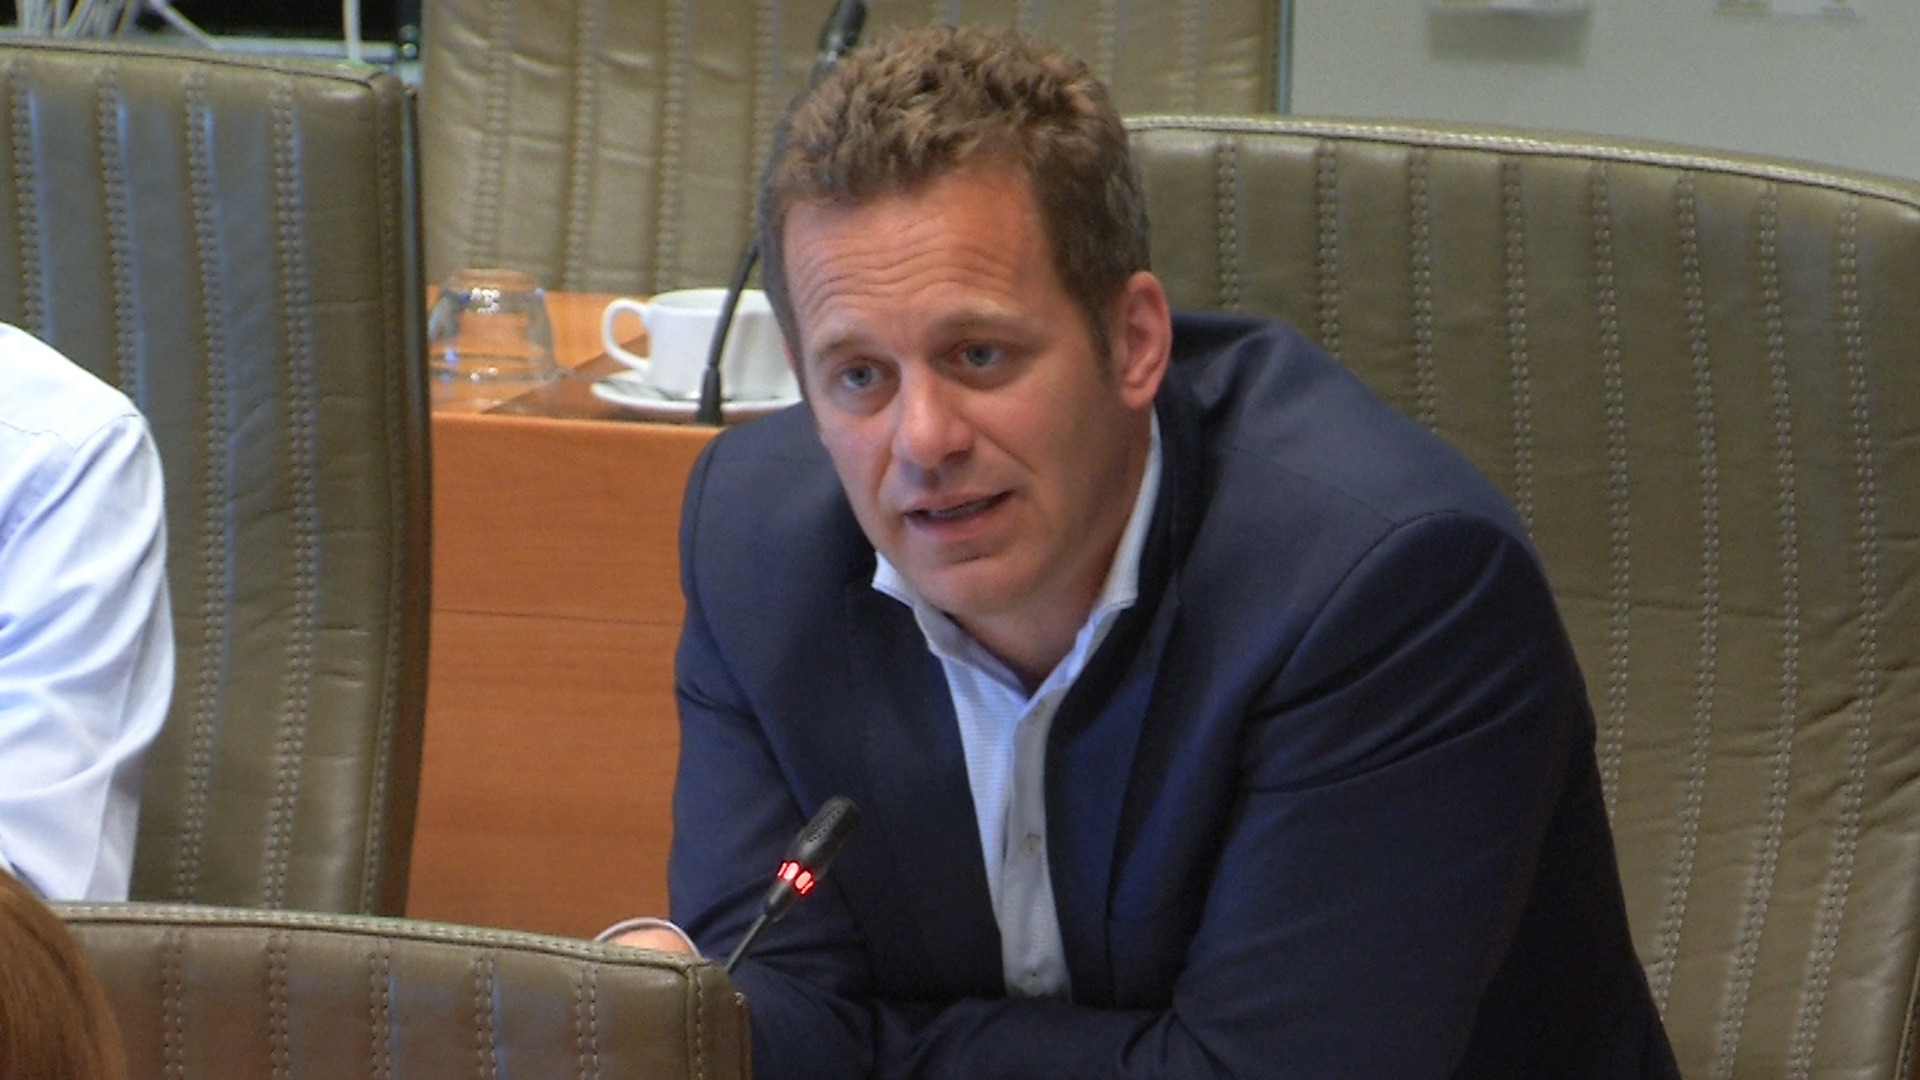 #spraakmakers: 'Dit is geen bescheten commissie' - Robrecht Bothuyne